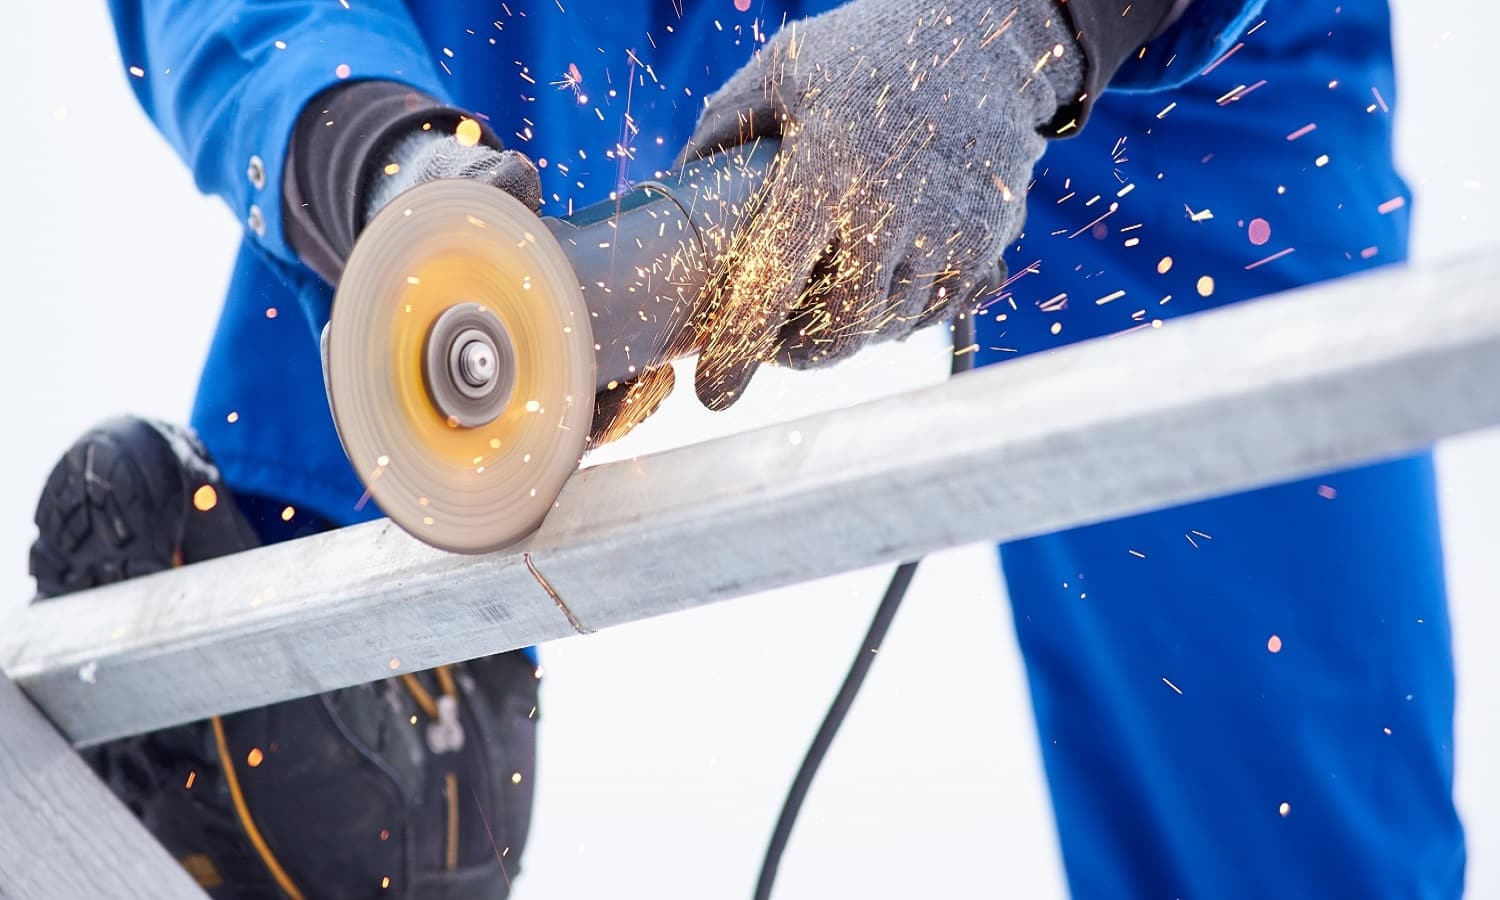 Cropped shot of a technician worker cutting steel on sonstruction site welding constructionist work profession occupation job craft metal metalworking industrial equipment tools.